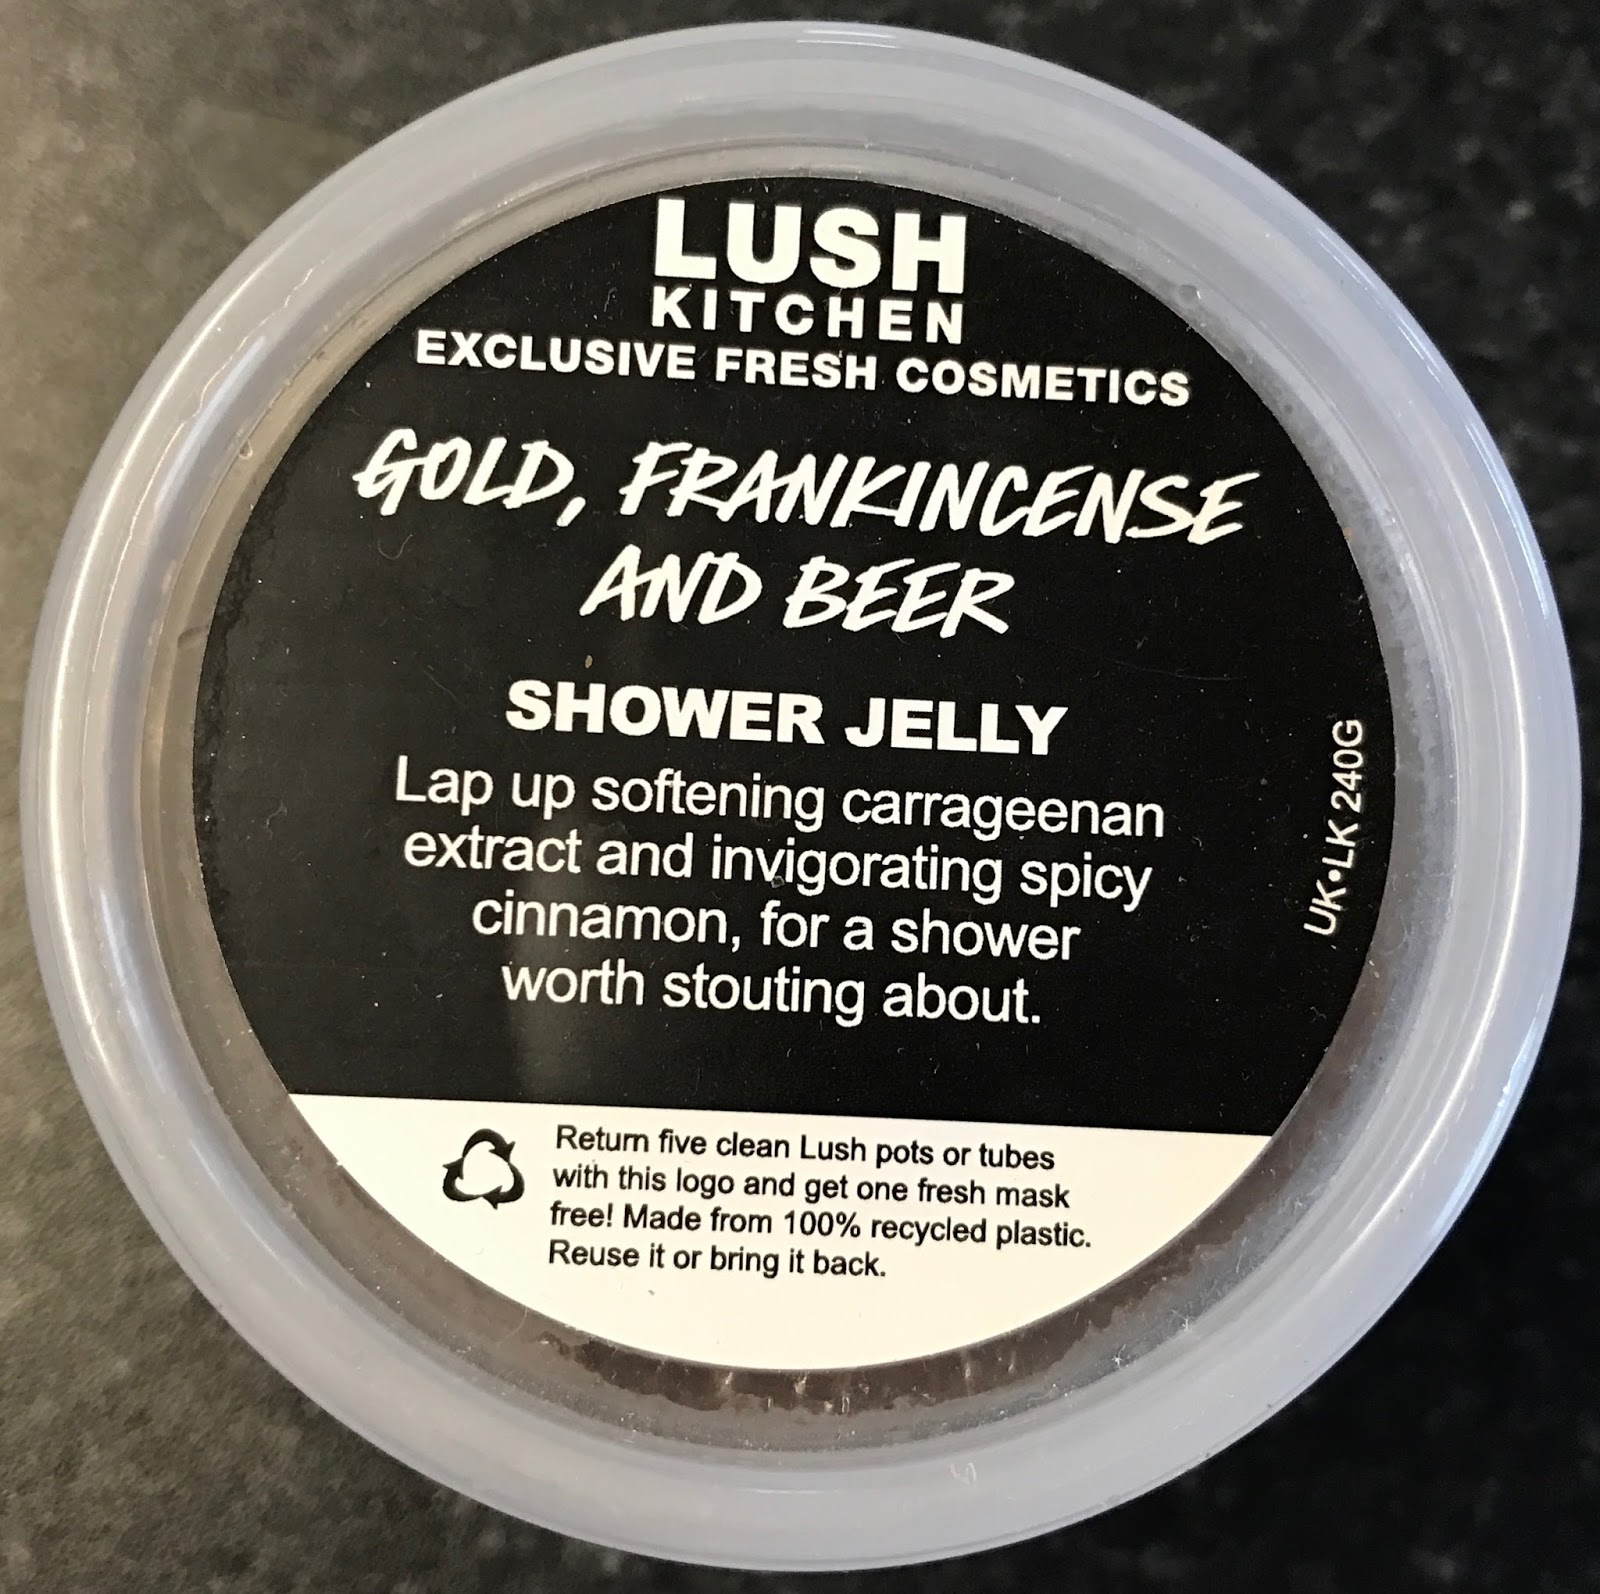 All Things Lush UK: Gold, Frankincense & Beer Shower Jelly